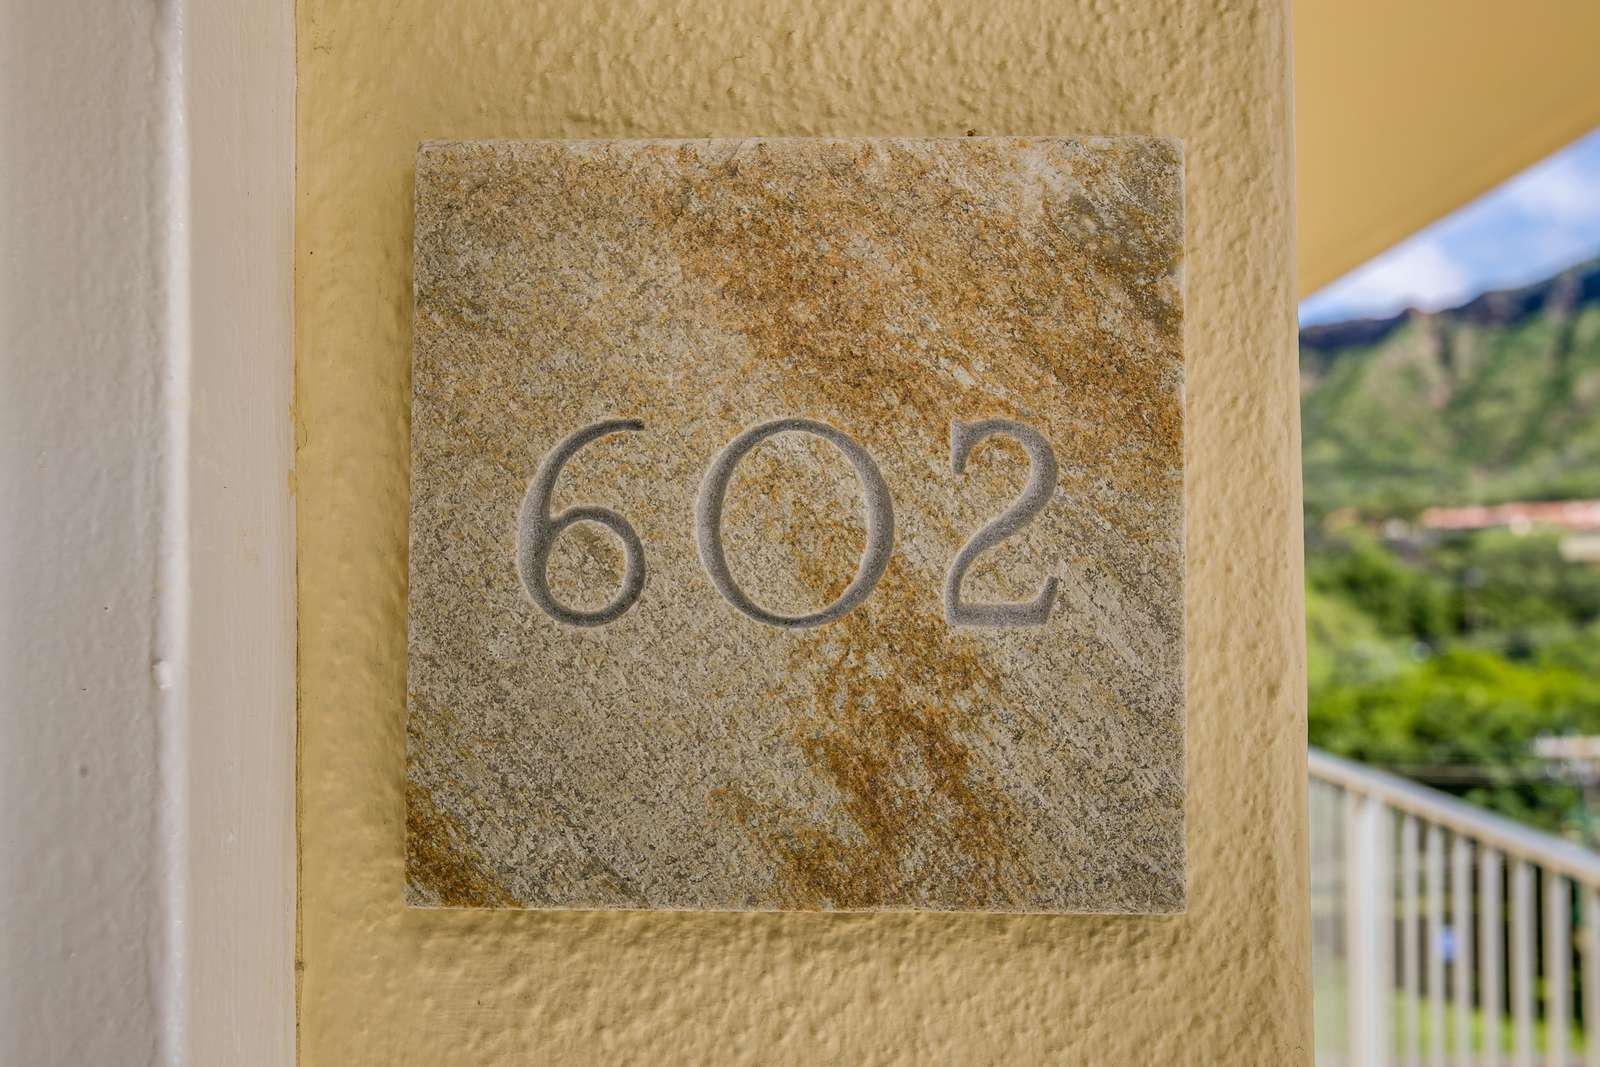 Suite 602 at The Diamond Head Beach Hotel & Residences awaits!